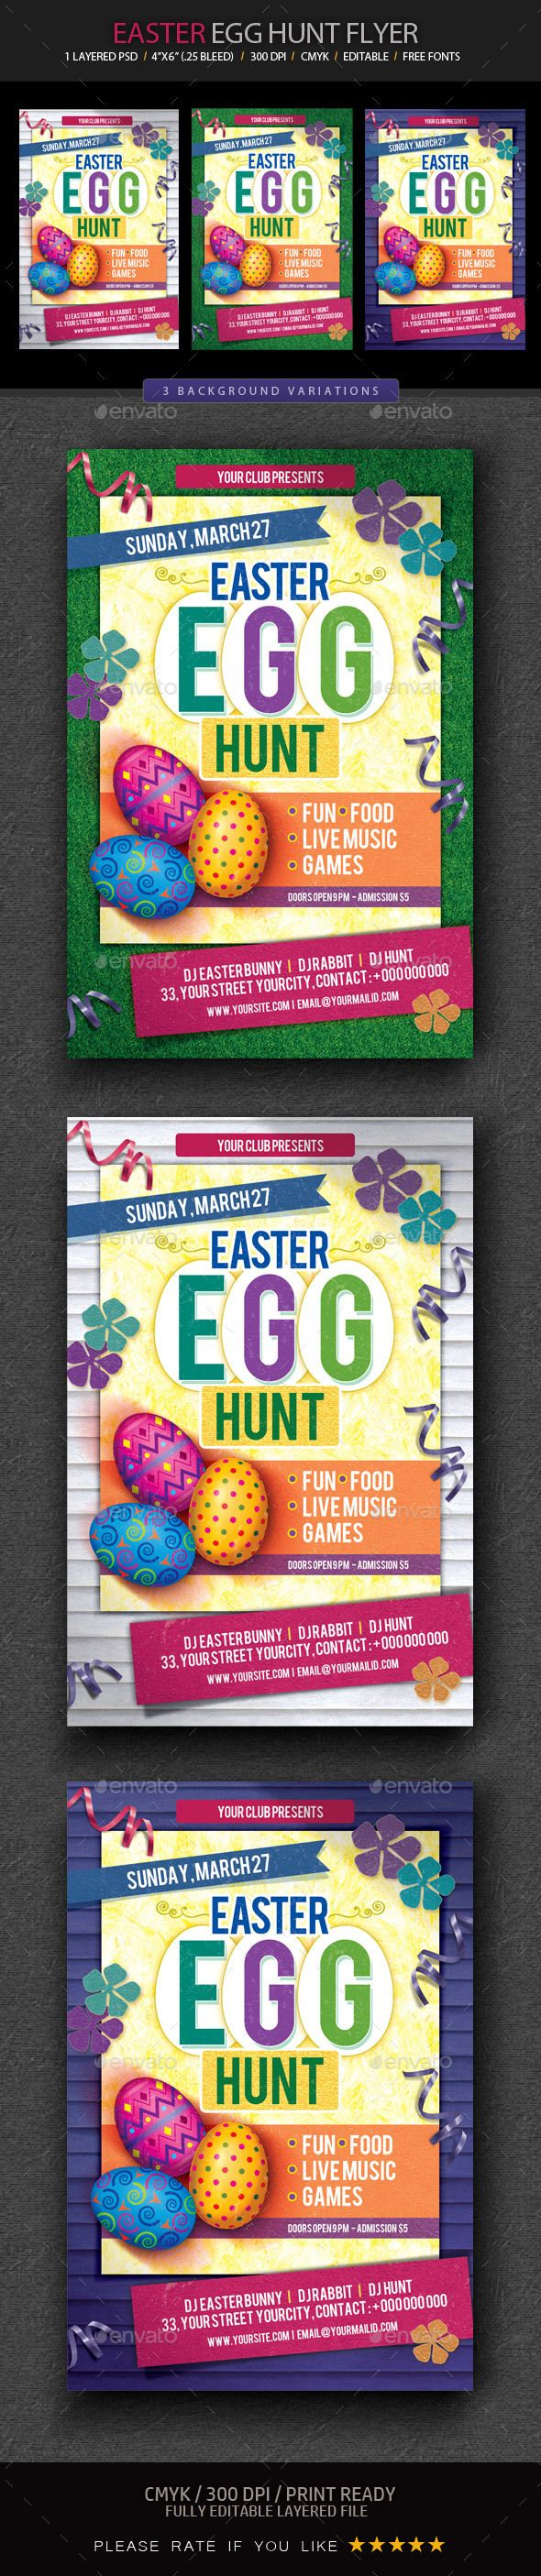 Best Easter Graphics Templates Images On   Flyer